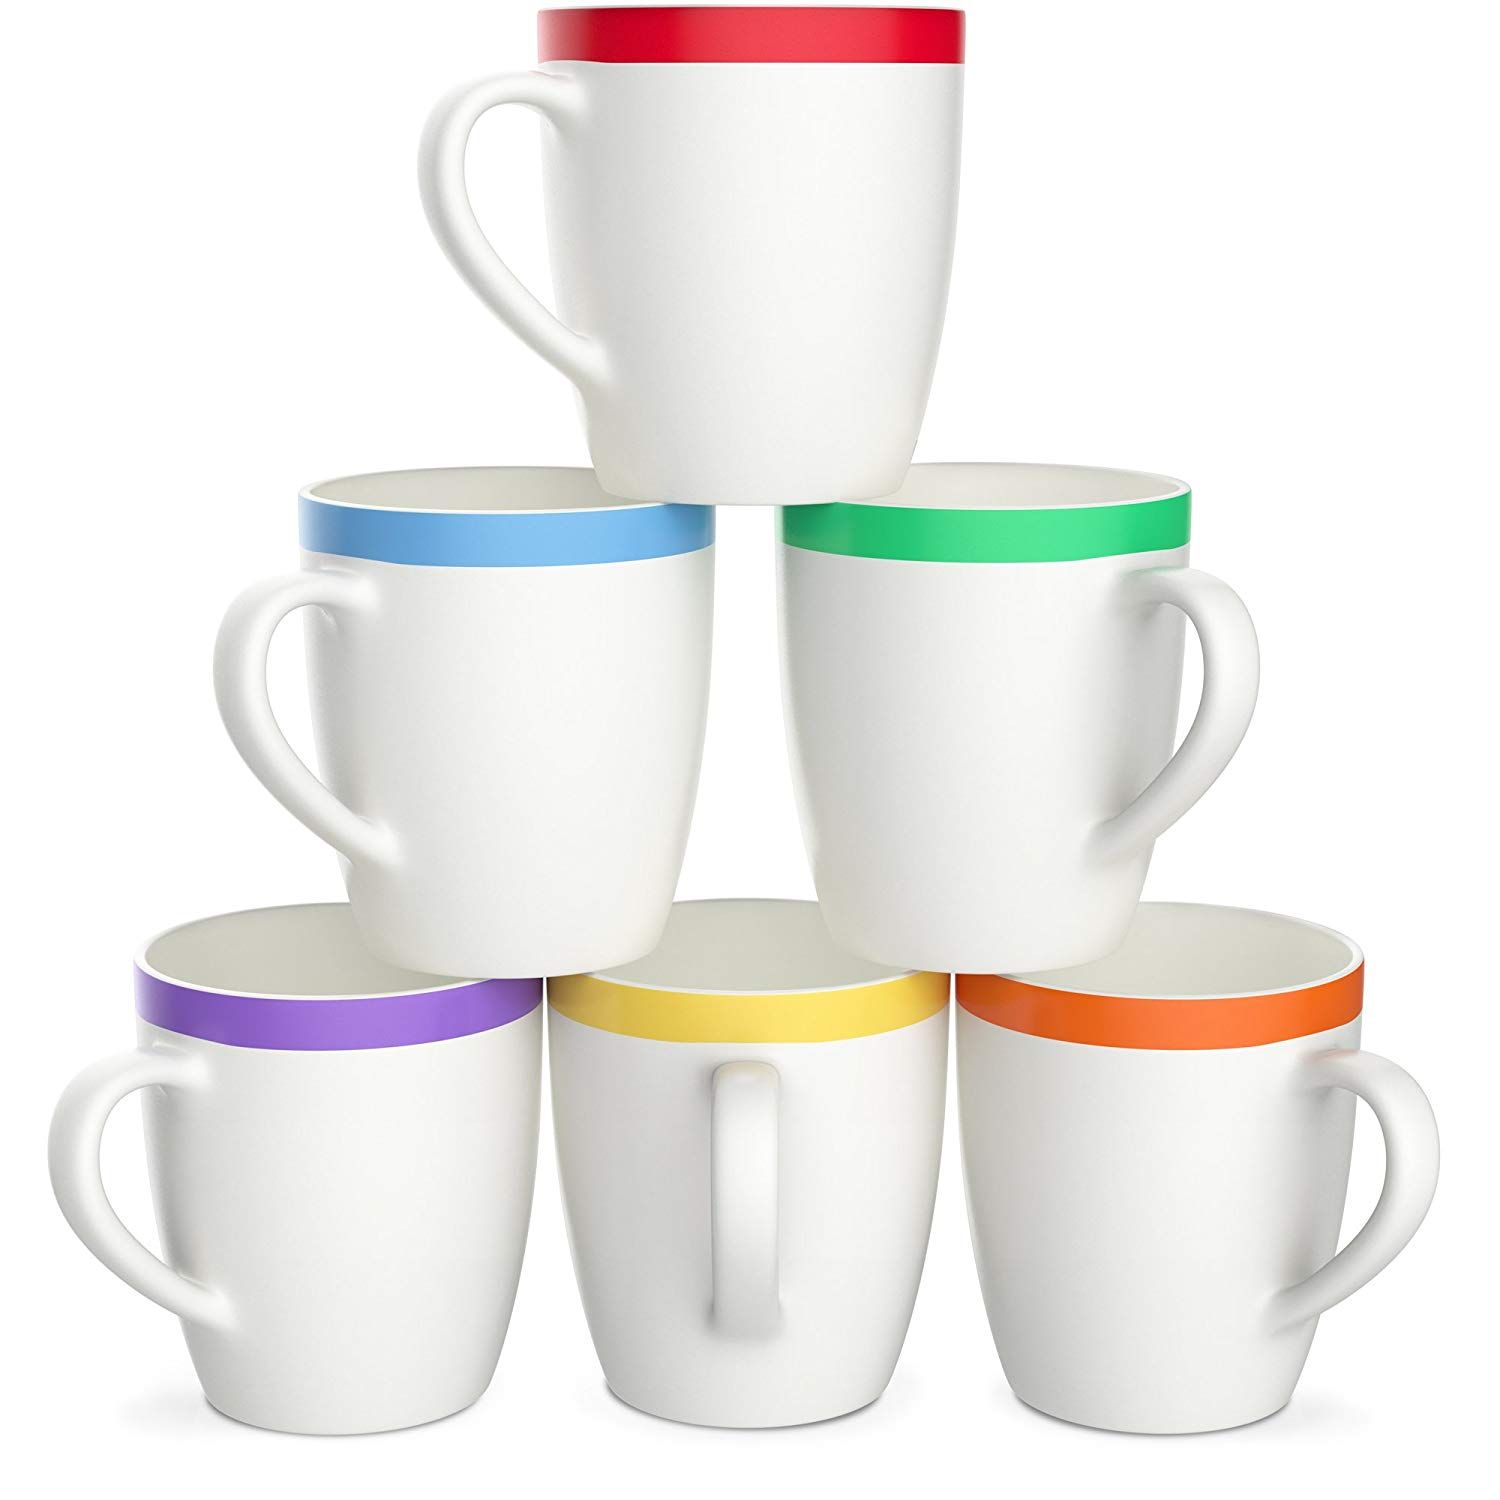 Top 10 Best Coffee Mug Sets Reviews Buying Guide 9